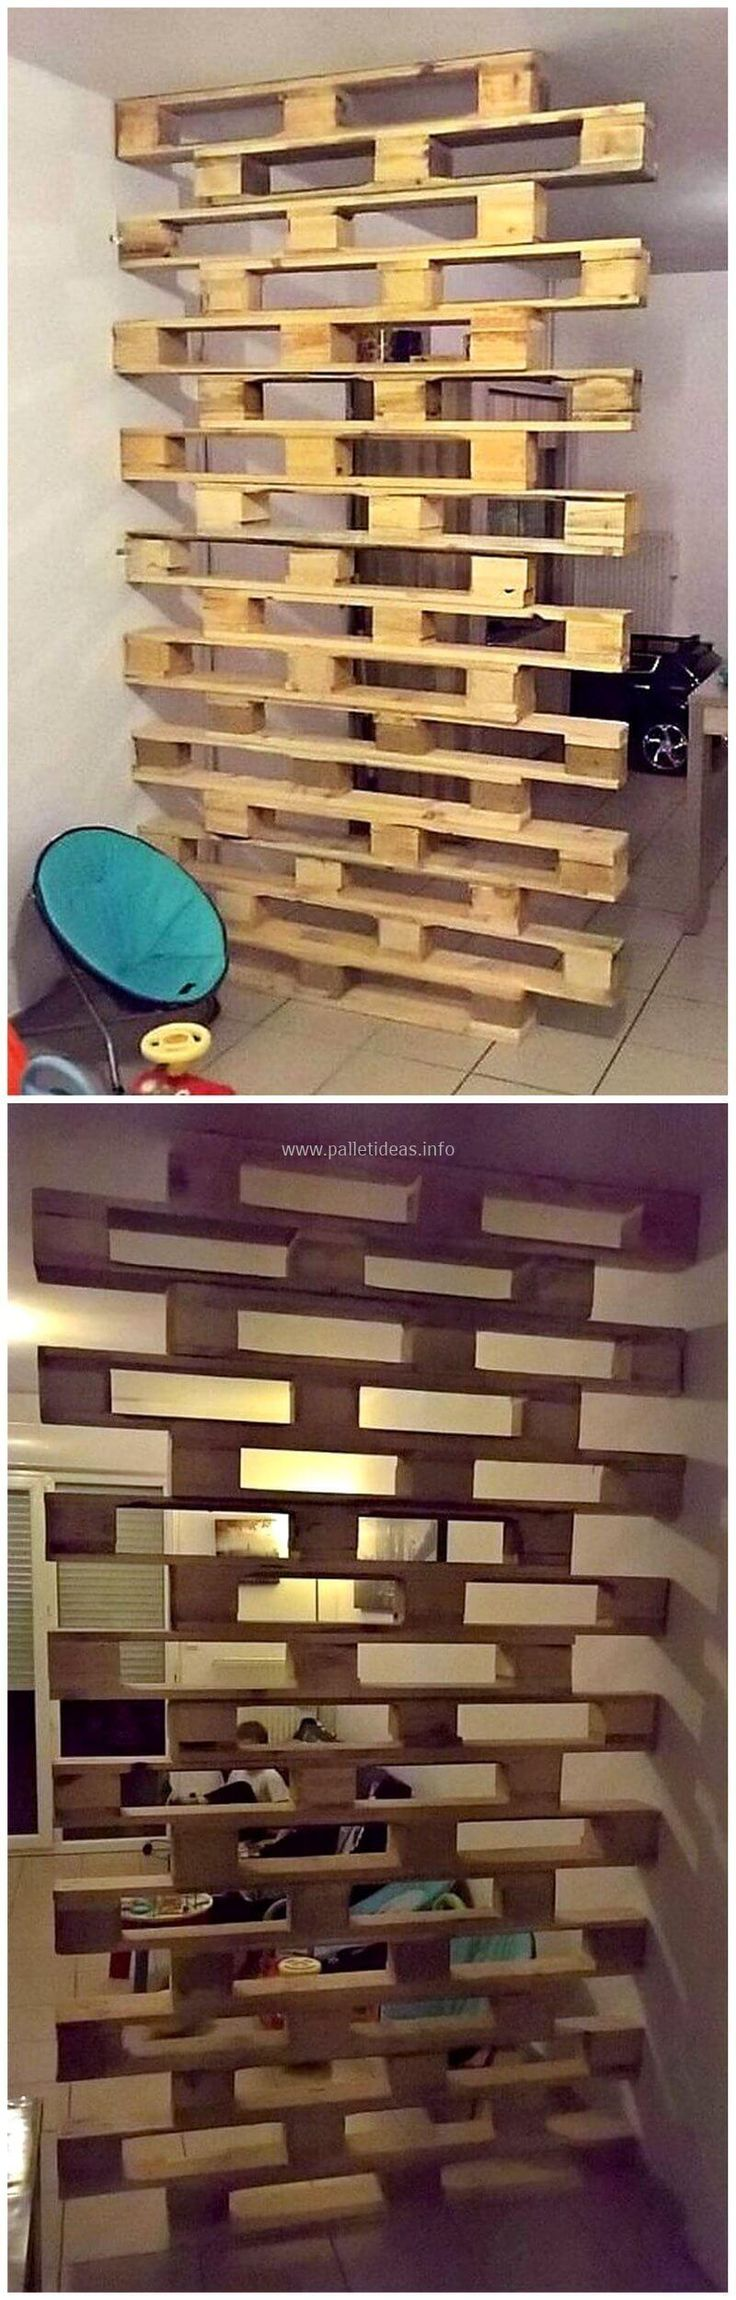 Some Cool Ideas Out Of Wood Pallets. Find This Pin And More On Room Dividers  ...